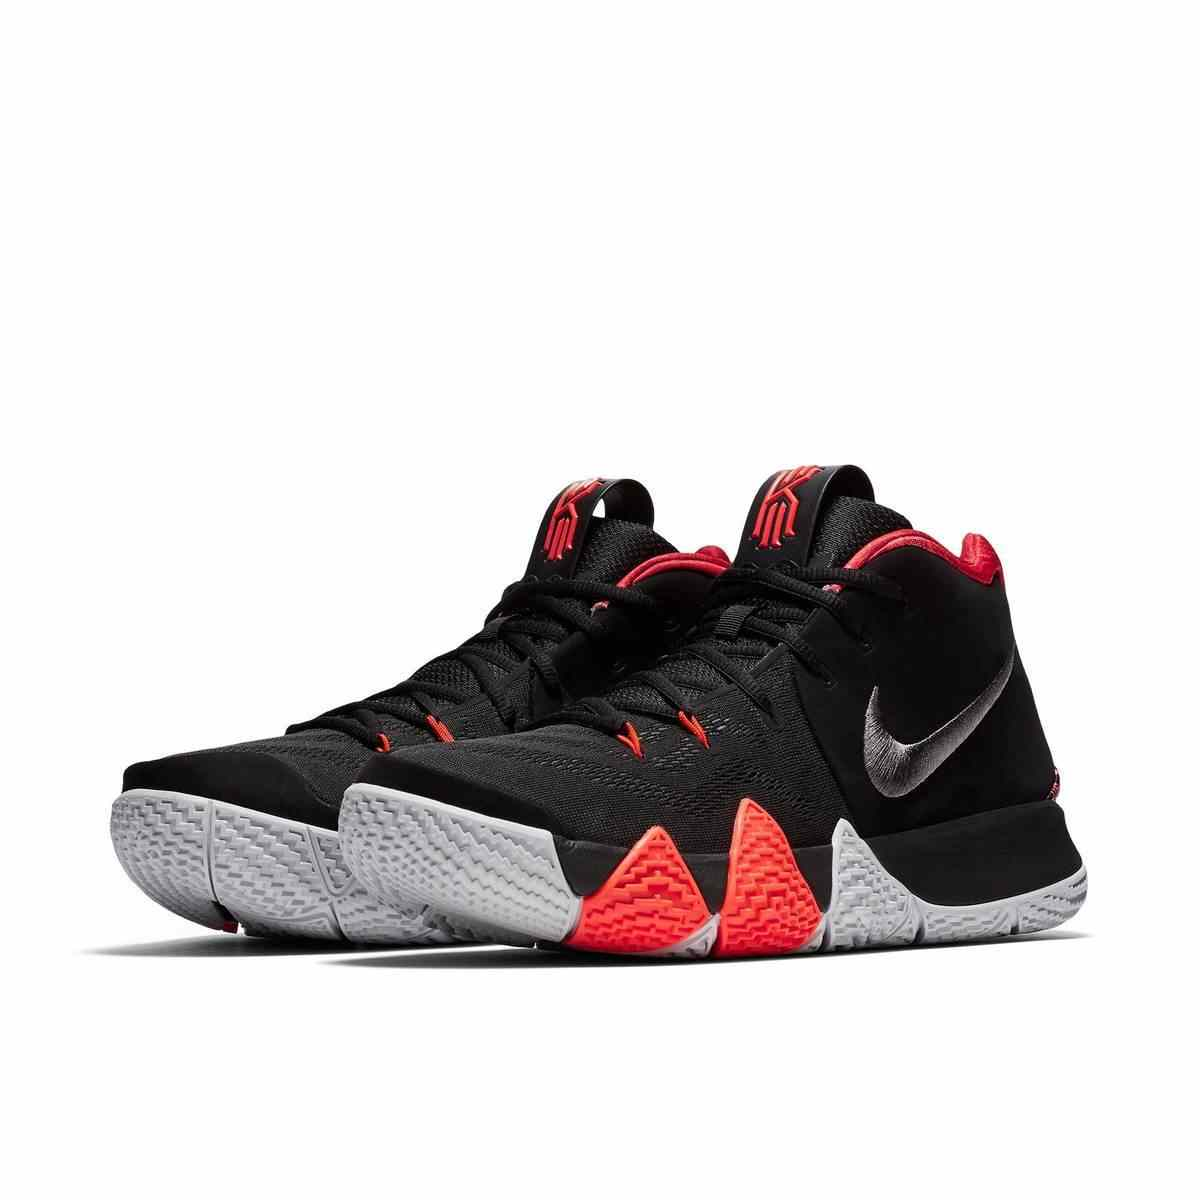 a48dd77aace9 ... NIKE Original Authentic KYRIE 4 EPmens Totem Zoom Air Basketball Shoes  Sneakers Hiking Sport Outdoor Good ...